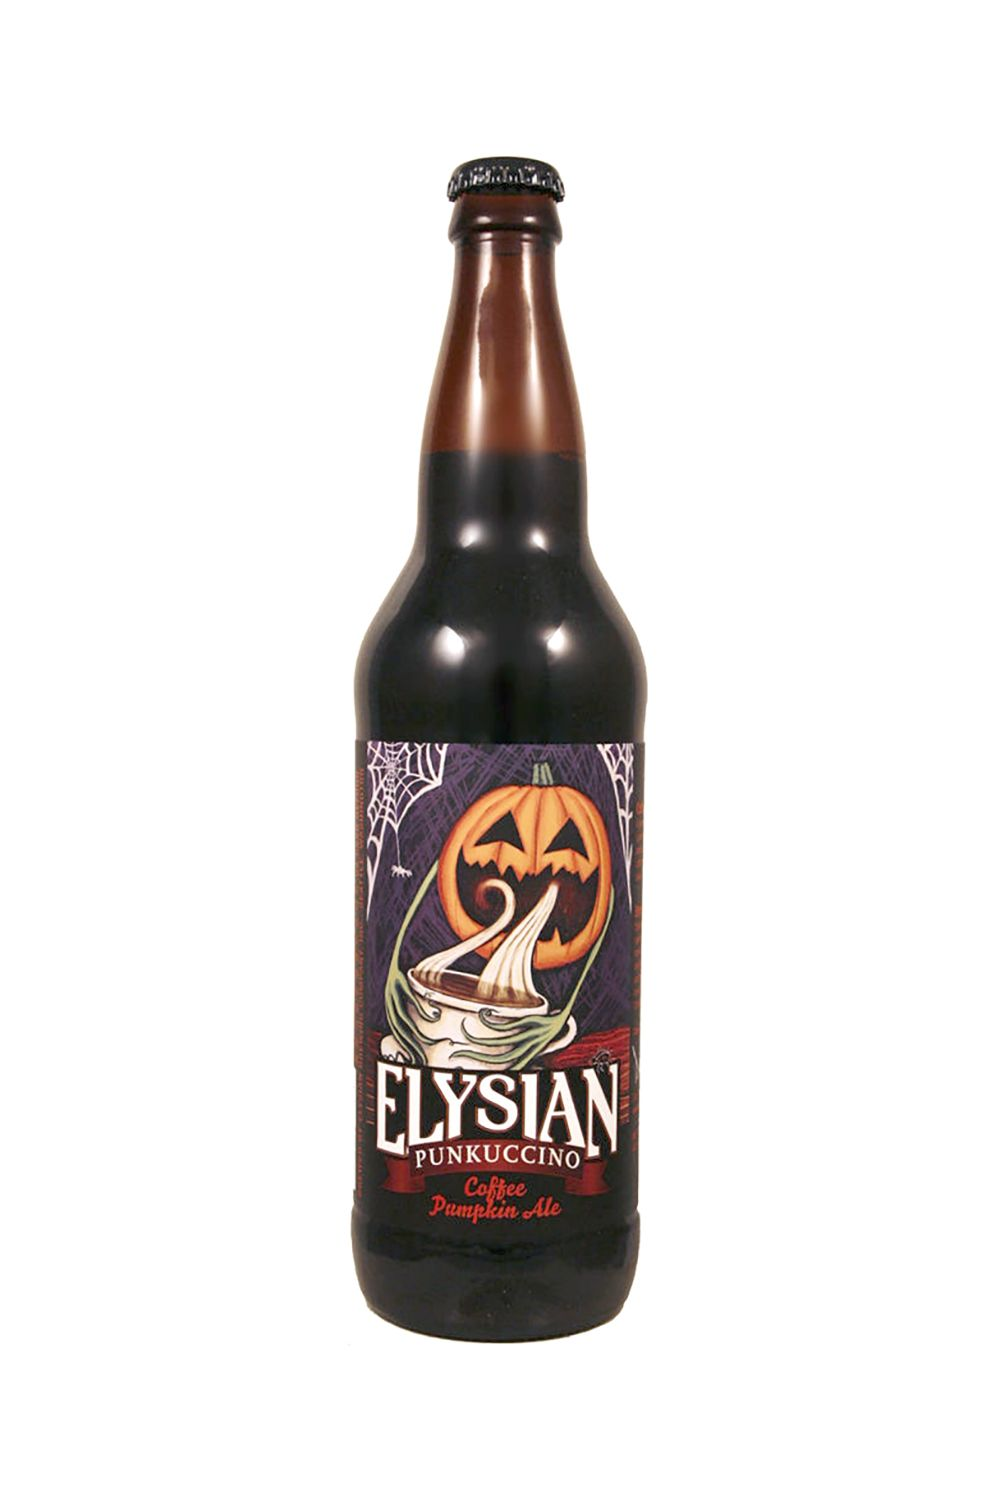 "<p>This fall, Elysium will follow up on the success of its first seasonal release, Night Owl Pumpkin Ale, with a trio of tasty options. There's a smooth copper ale and a dark stout, but our favorite is this coffee-flavored (which may sound gross, but think of it as the perfect post-Thanksgiving dinner pumpkin pie + coffee combo) ale that packs a shot of Stumptown coffee for a bitter taste. </p><p><strong data-redactor-tag=""strong"" data-verified=""redactor""><a href=""http://www.elysianbrewing.com/elysian-beers/punkuccino/"" target=""_blank"">Elysian Brewing Company Punkuccino Coffee Pumpkin Ale</a> (7.5% ABV), available August through the end of October in select U.S. markets. </strong></p>"